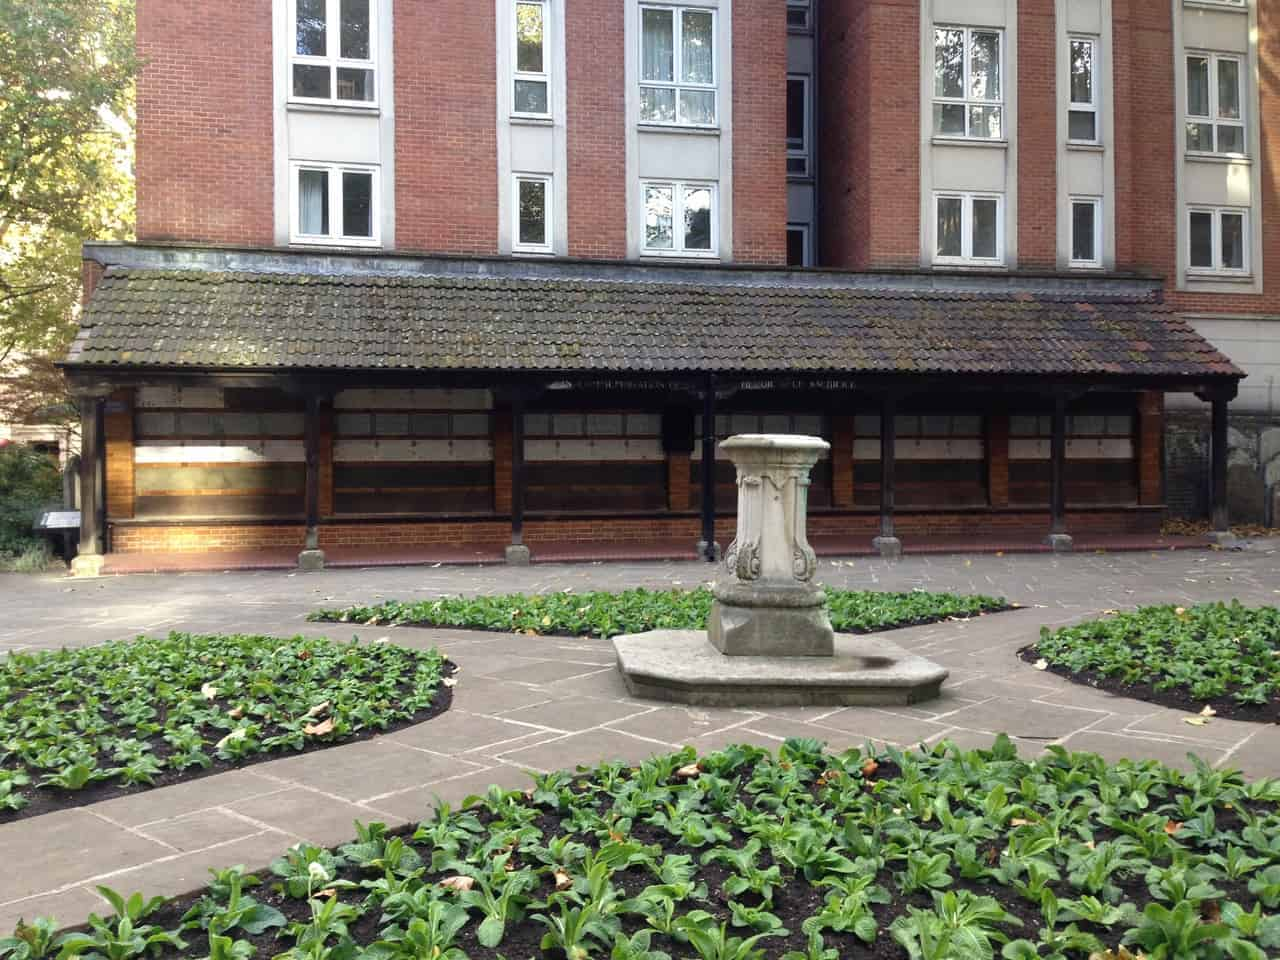 Pay tribute to the everyday citizens who are honored at Postman's Park in London.